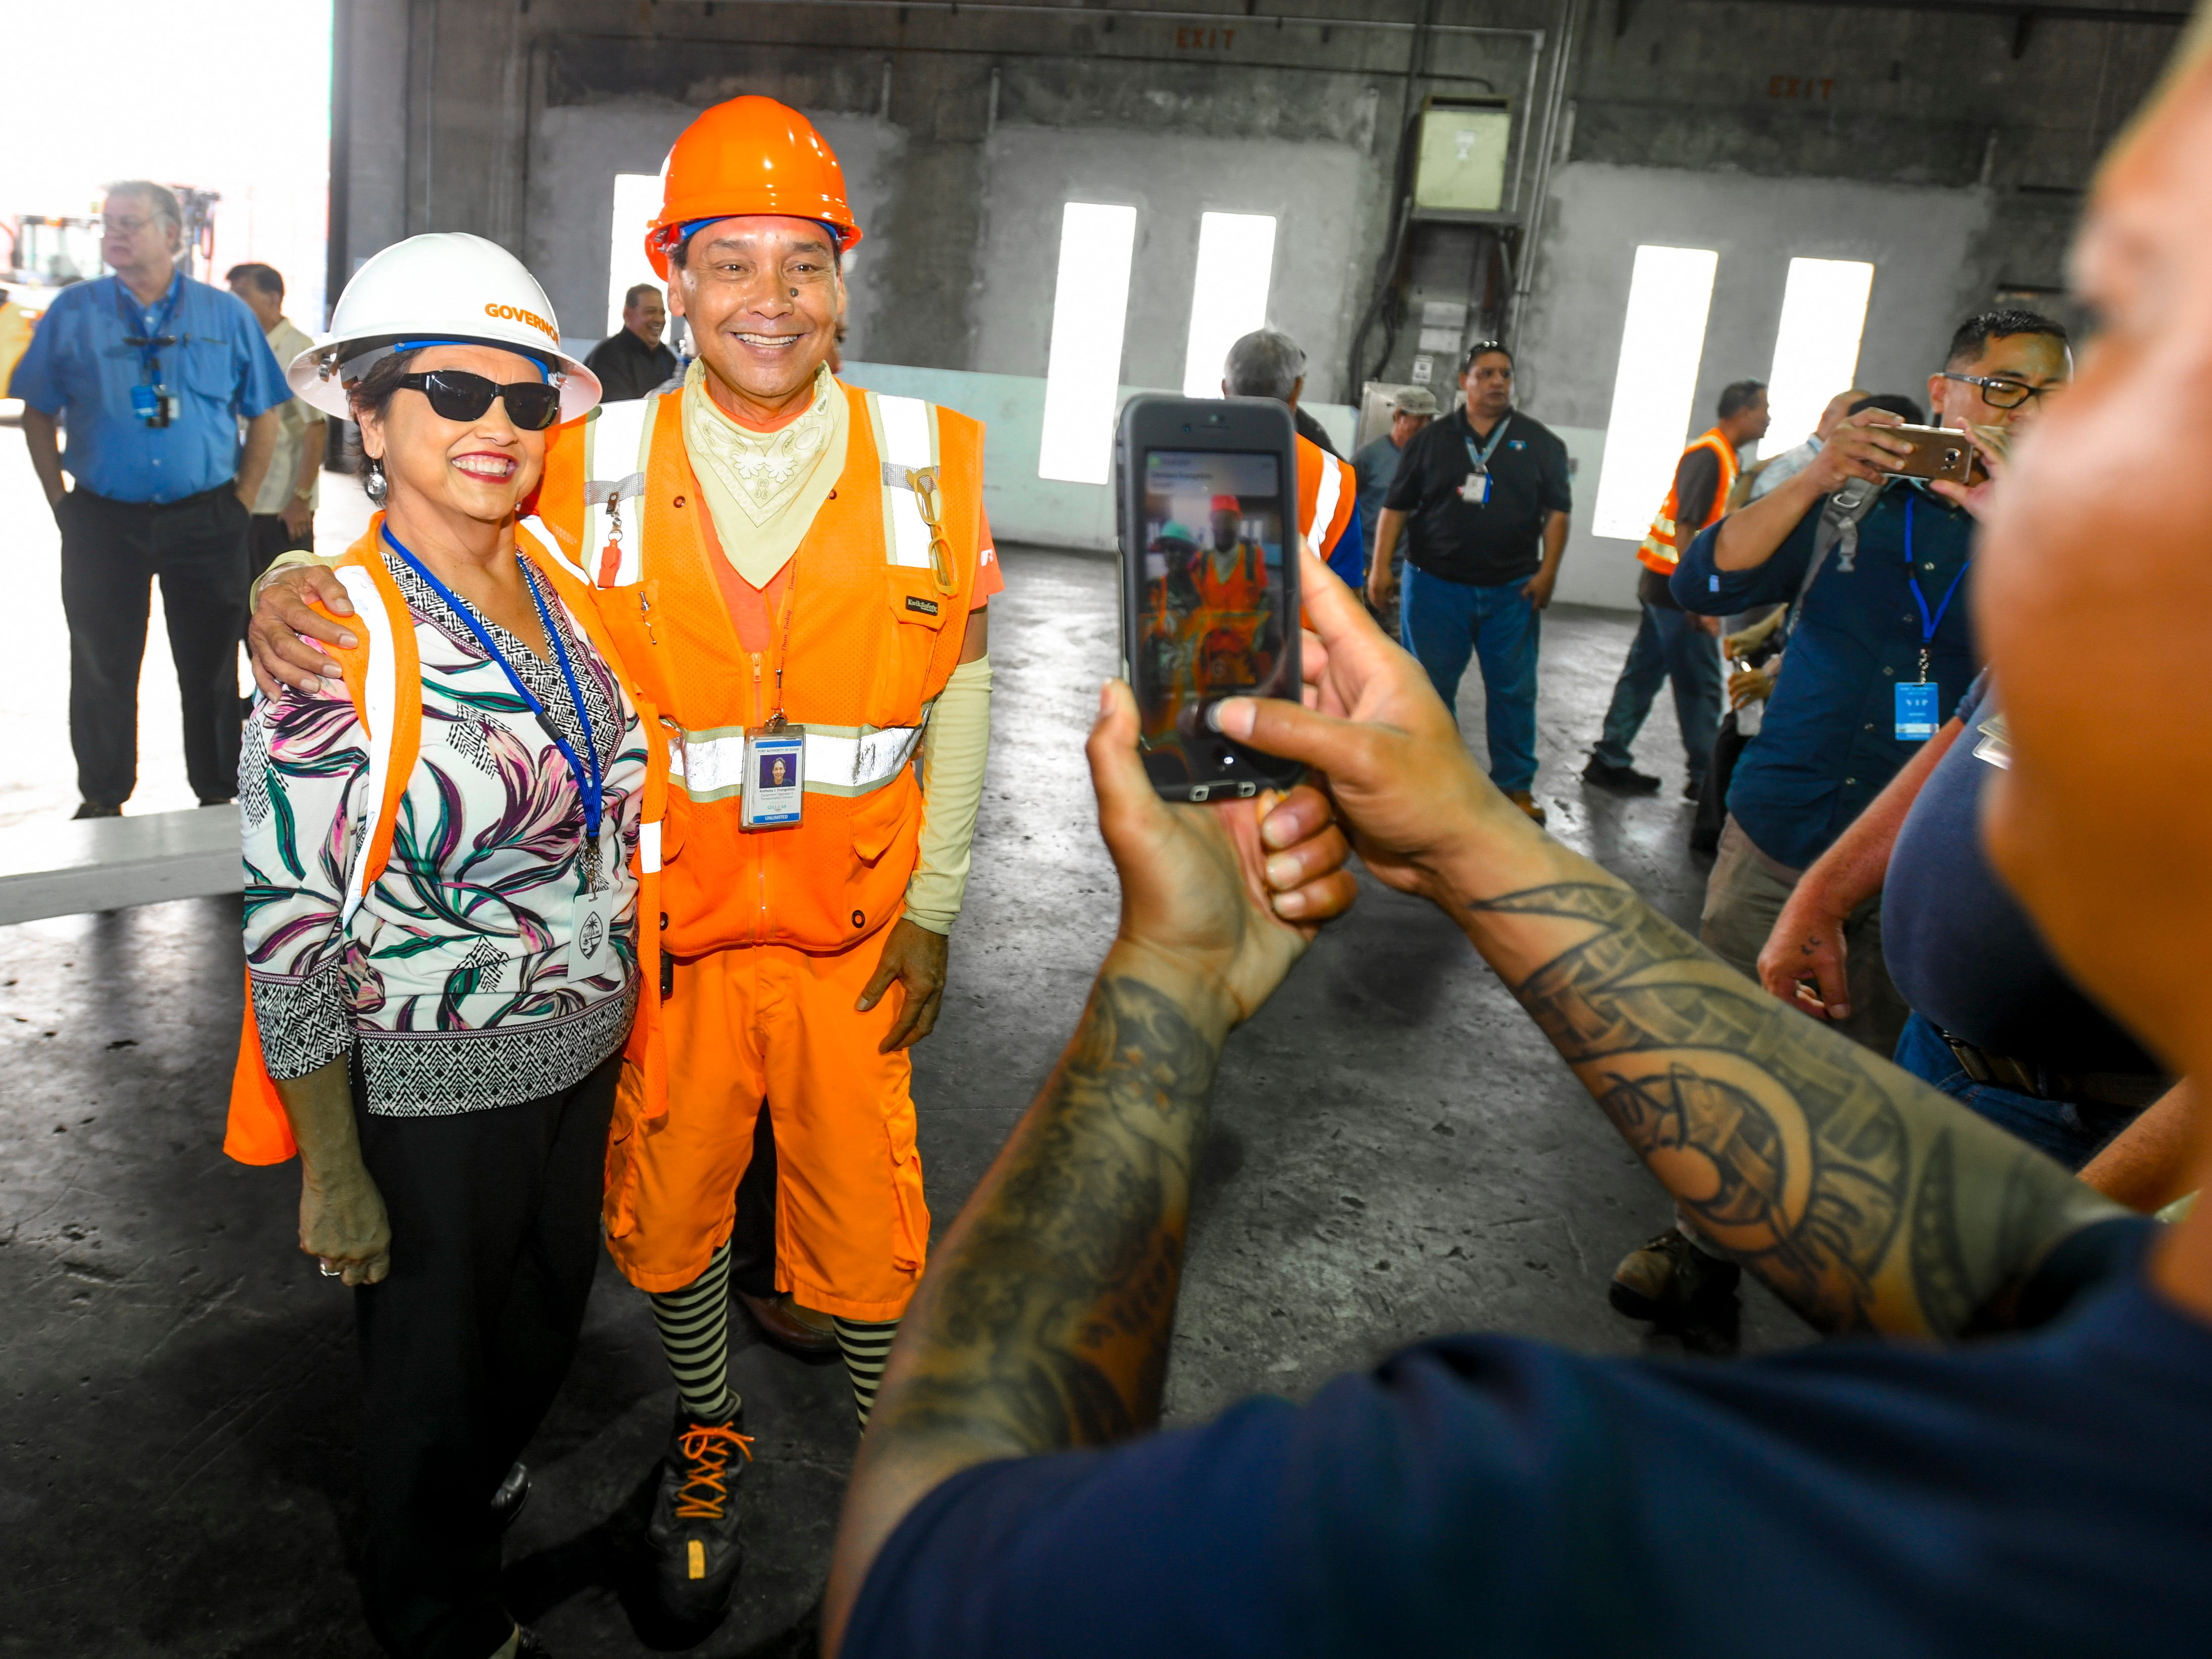 Equipment operator Anthony Evangelista takes the opportunity to have a photo taken with Gov. Lou Leon Guerrero during a tour by Leon Guerrero, Lt. Gov. Josh Tenorio and others, at the Jose D. Leon Guerrero Commercial Port in Piti on Wednesday, March 13, 2019.